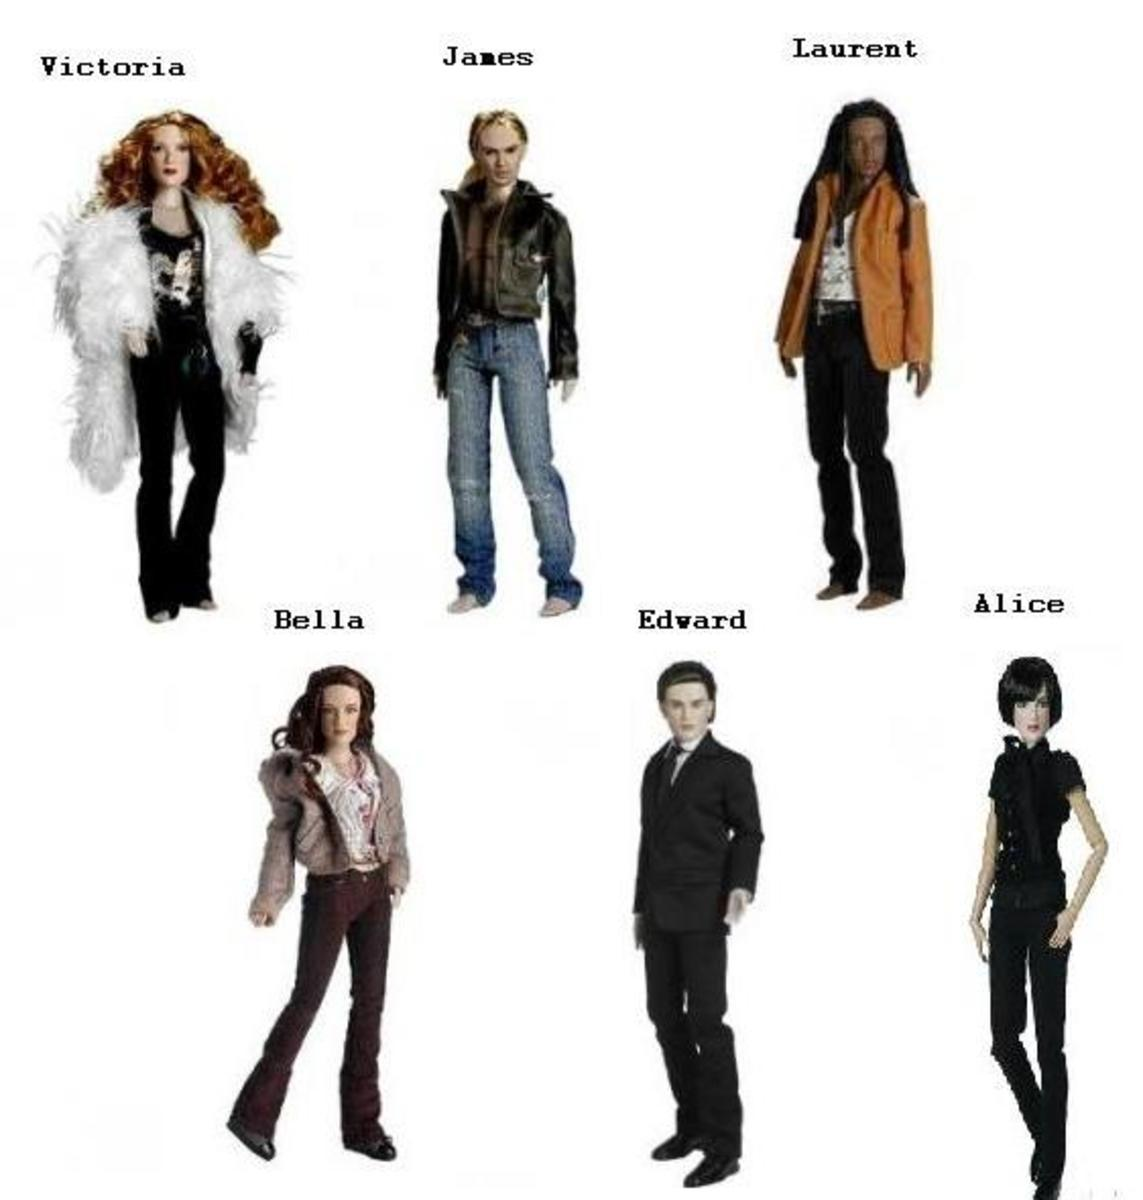 Twilight Saga Tonner Dolls - Edward Cullen, Bella Swan, Jacob Black,Victoria, James, Laurent, Jasper Hale, Alice